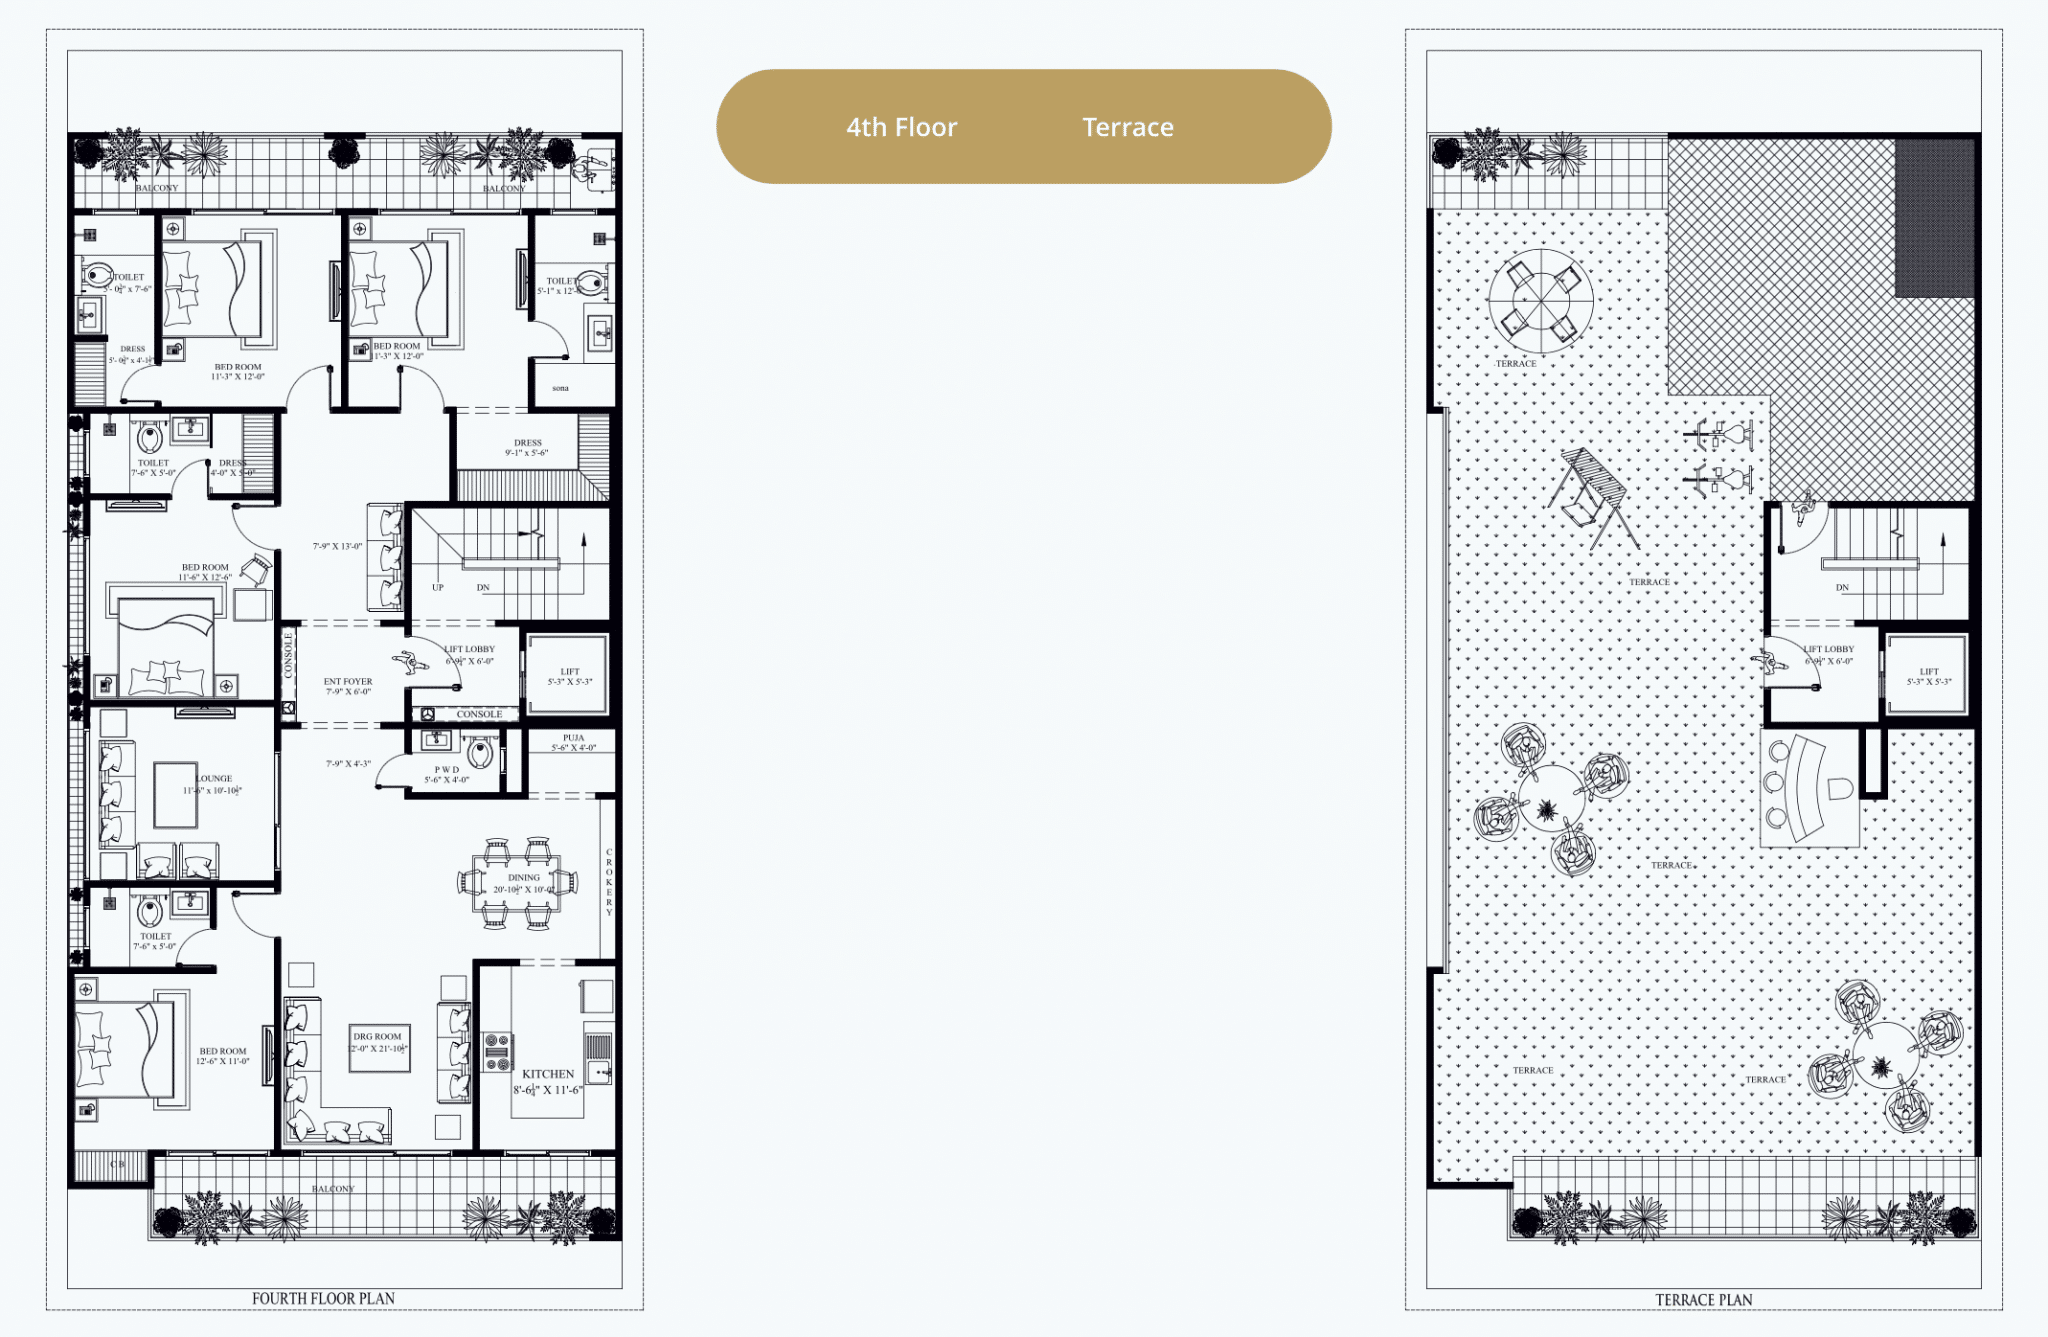 4th and Terrace Floor Plan